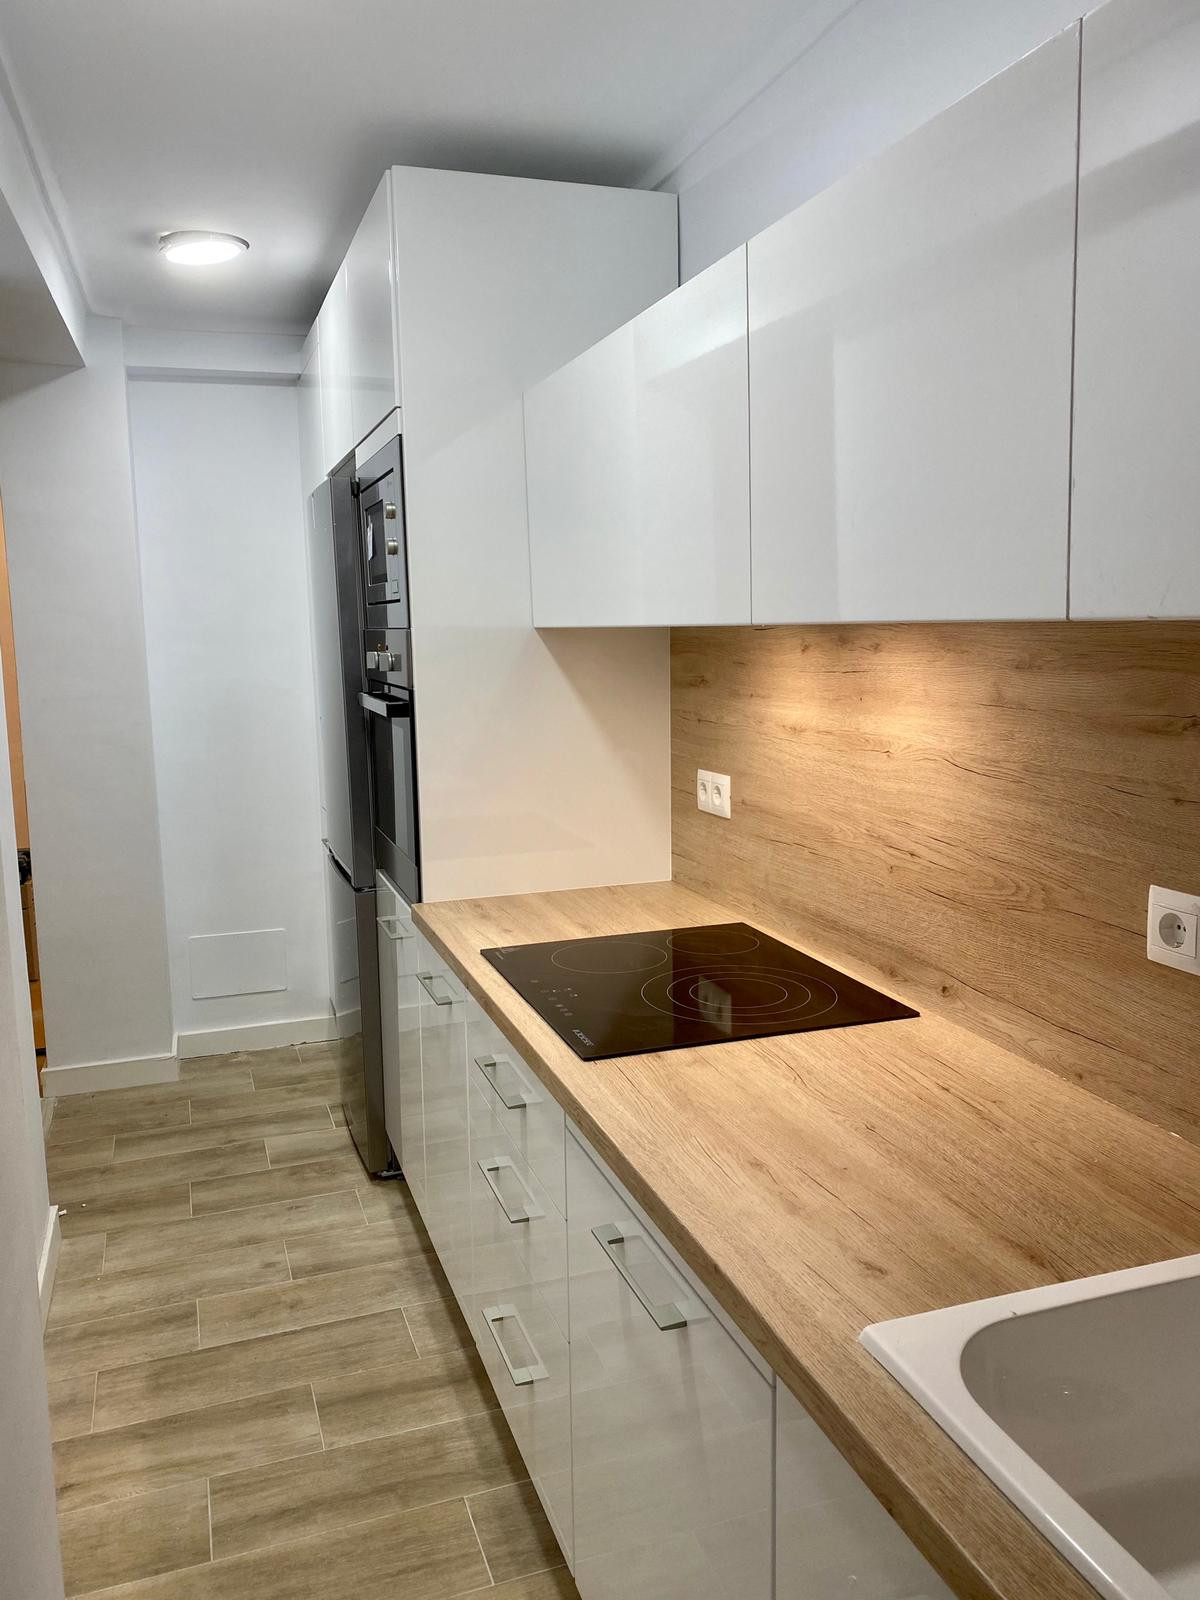 SUPER APARTMENT IN HUELIN WITH 3 BEDROOMS, 1 BATHROOMS, FULLY RENOVATED BRAND NEW IN ONE OF THE BEST,Spain